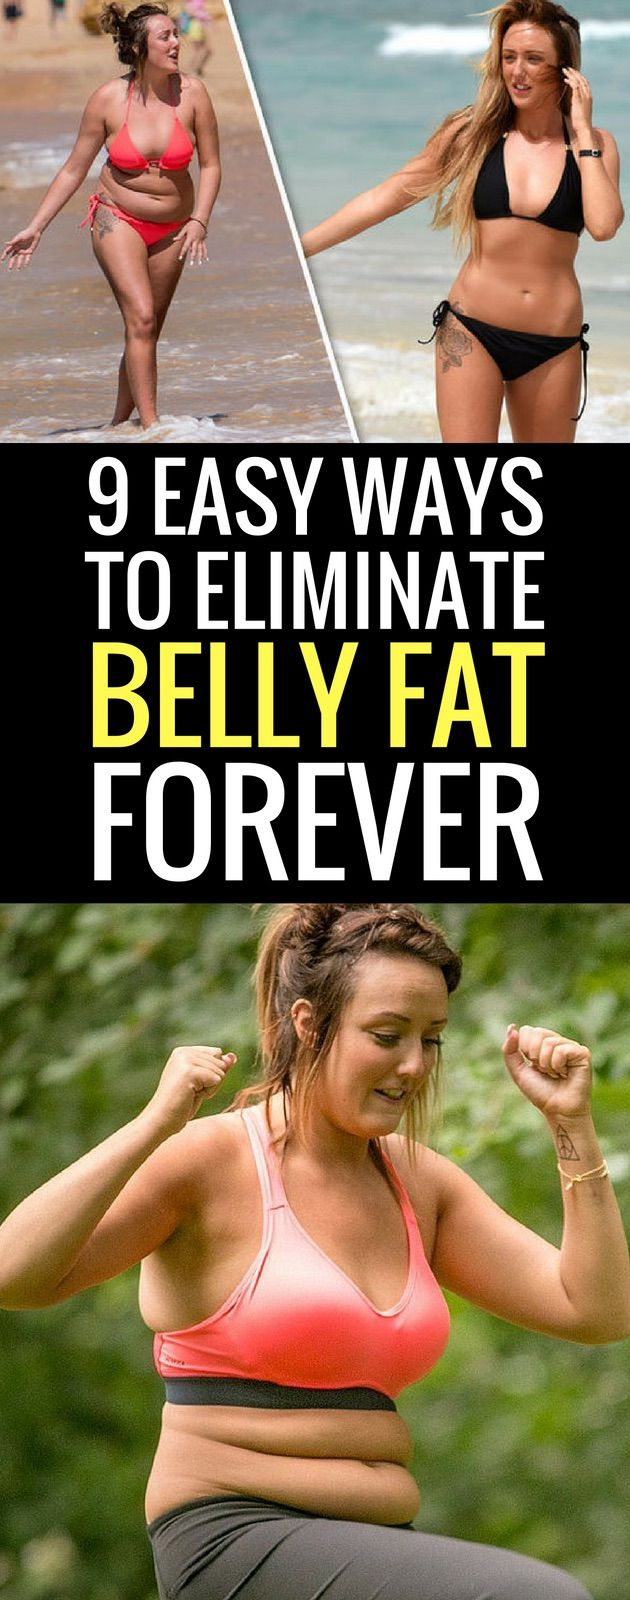 9 habit changes - to get rid of belly fat for good